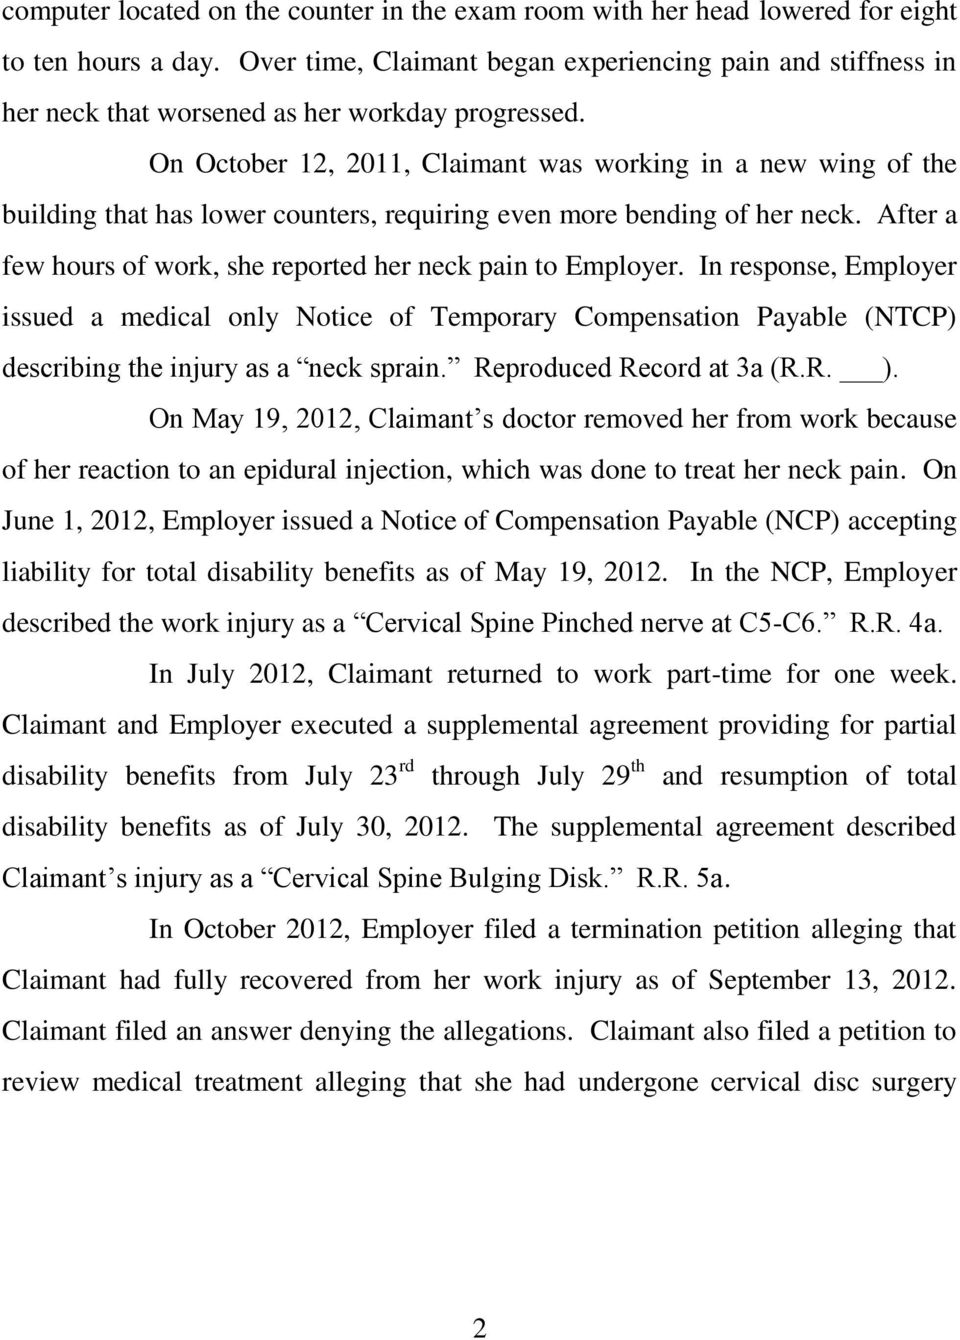 On October 12, 2011, Claimant was working in a new wing of the building that has lower counters, requiring even more bending of her neck.